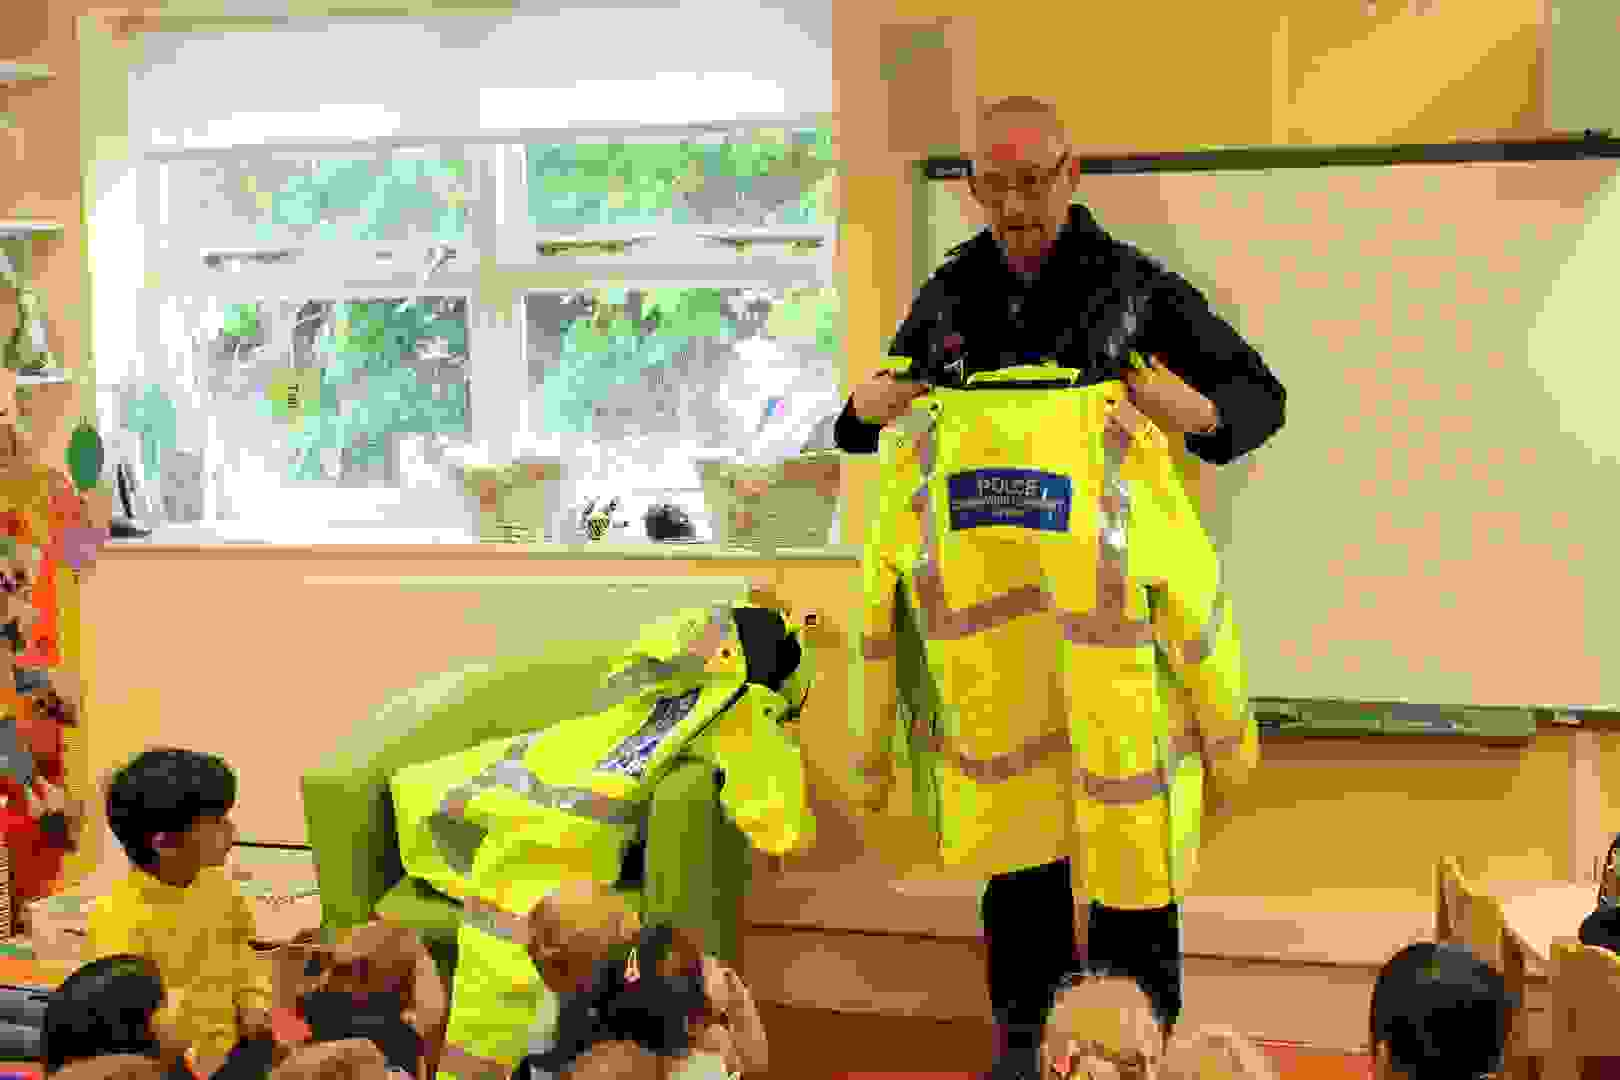 Emergency Services Week - Police Officer showing his uniform